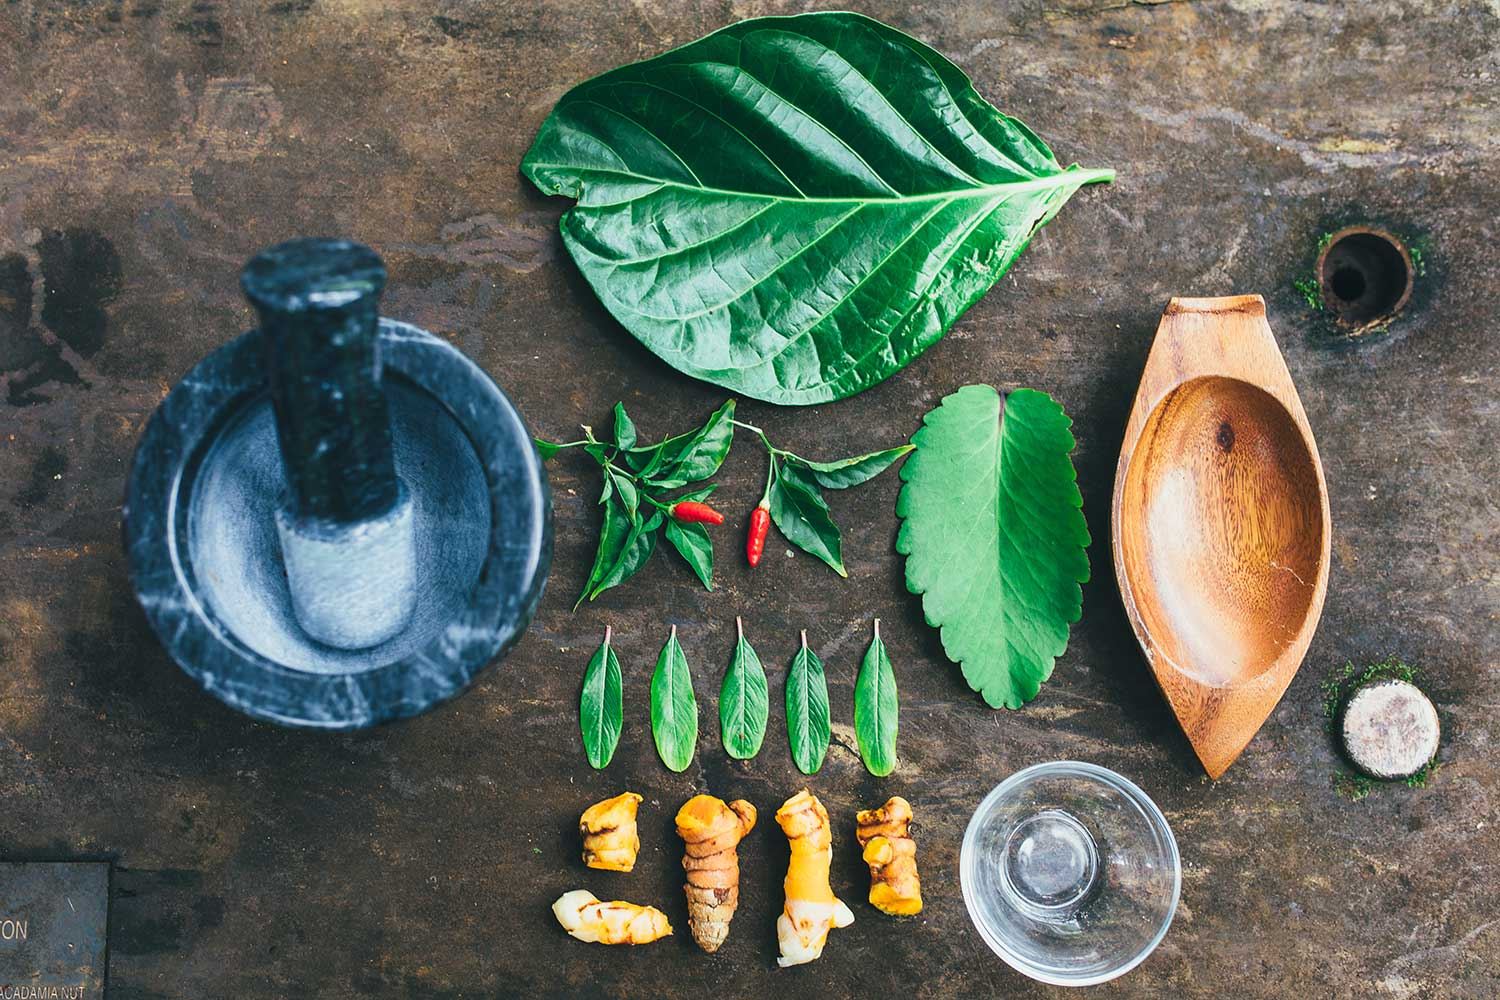 Traditional Hawaiian medicinal plants and tools